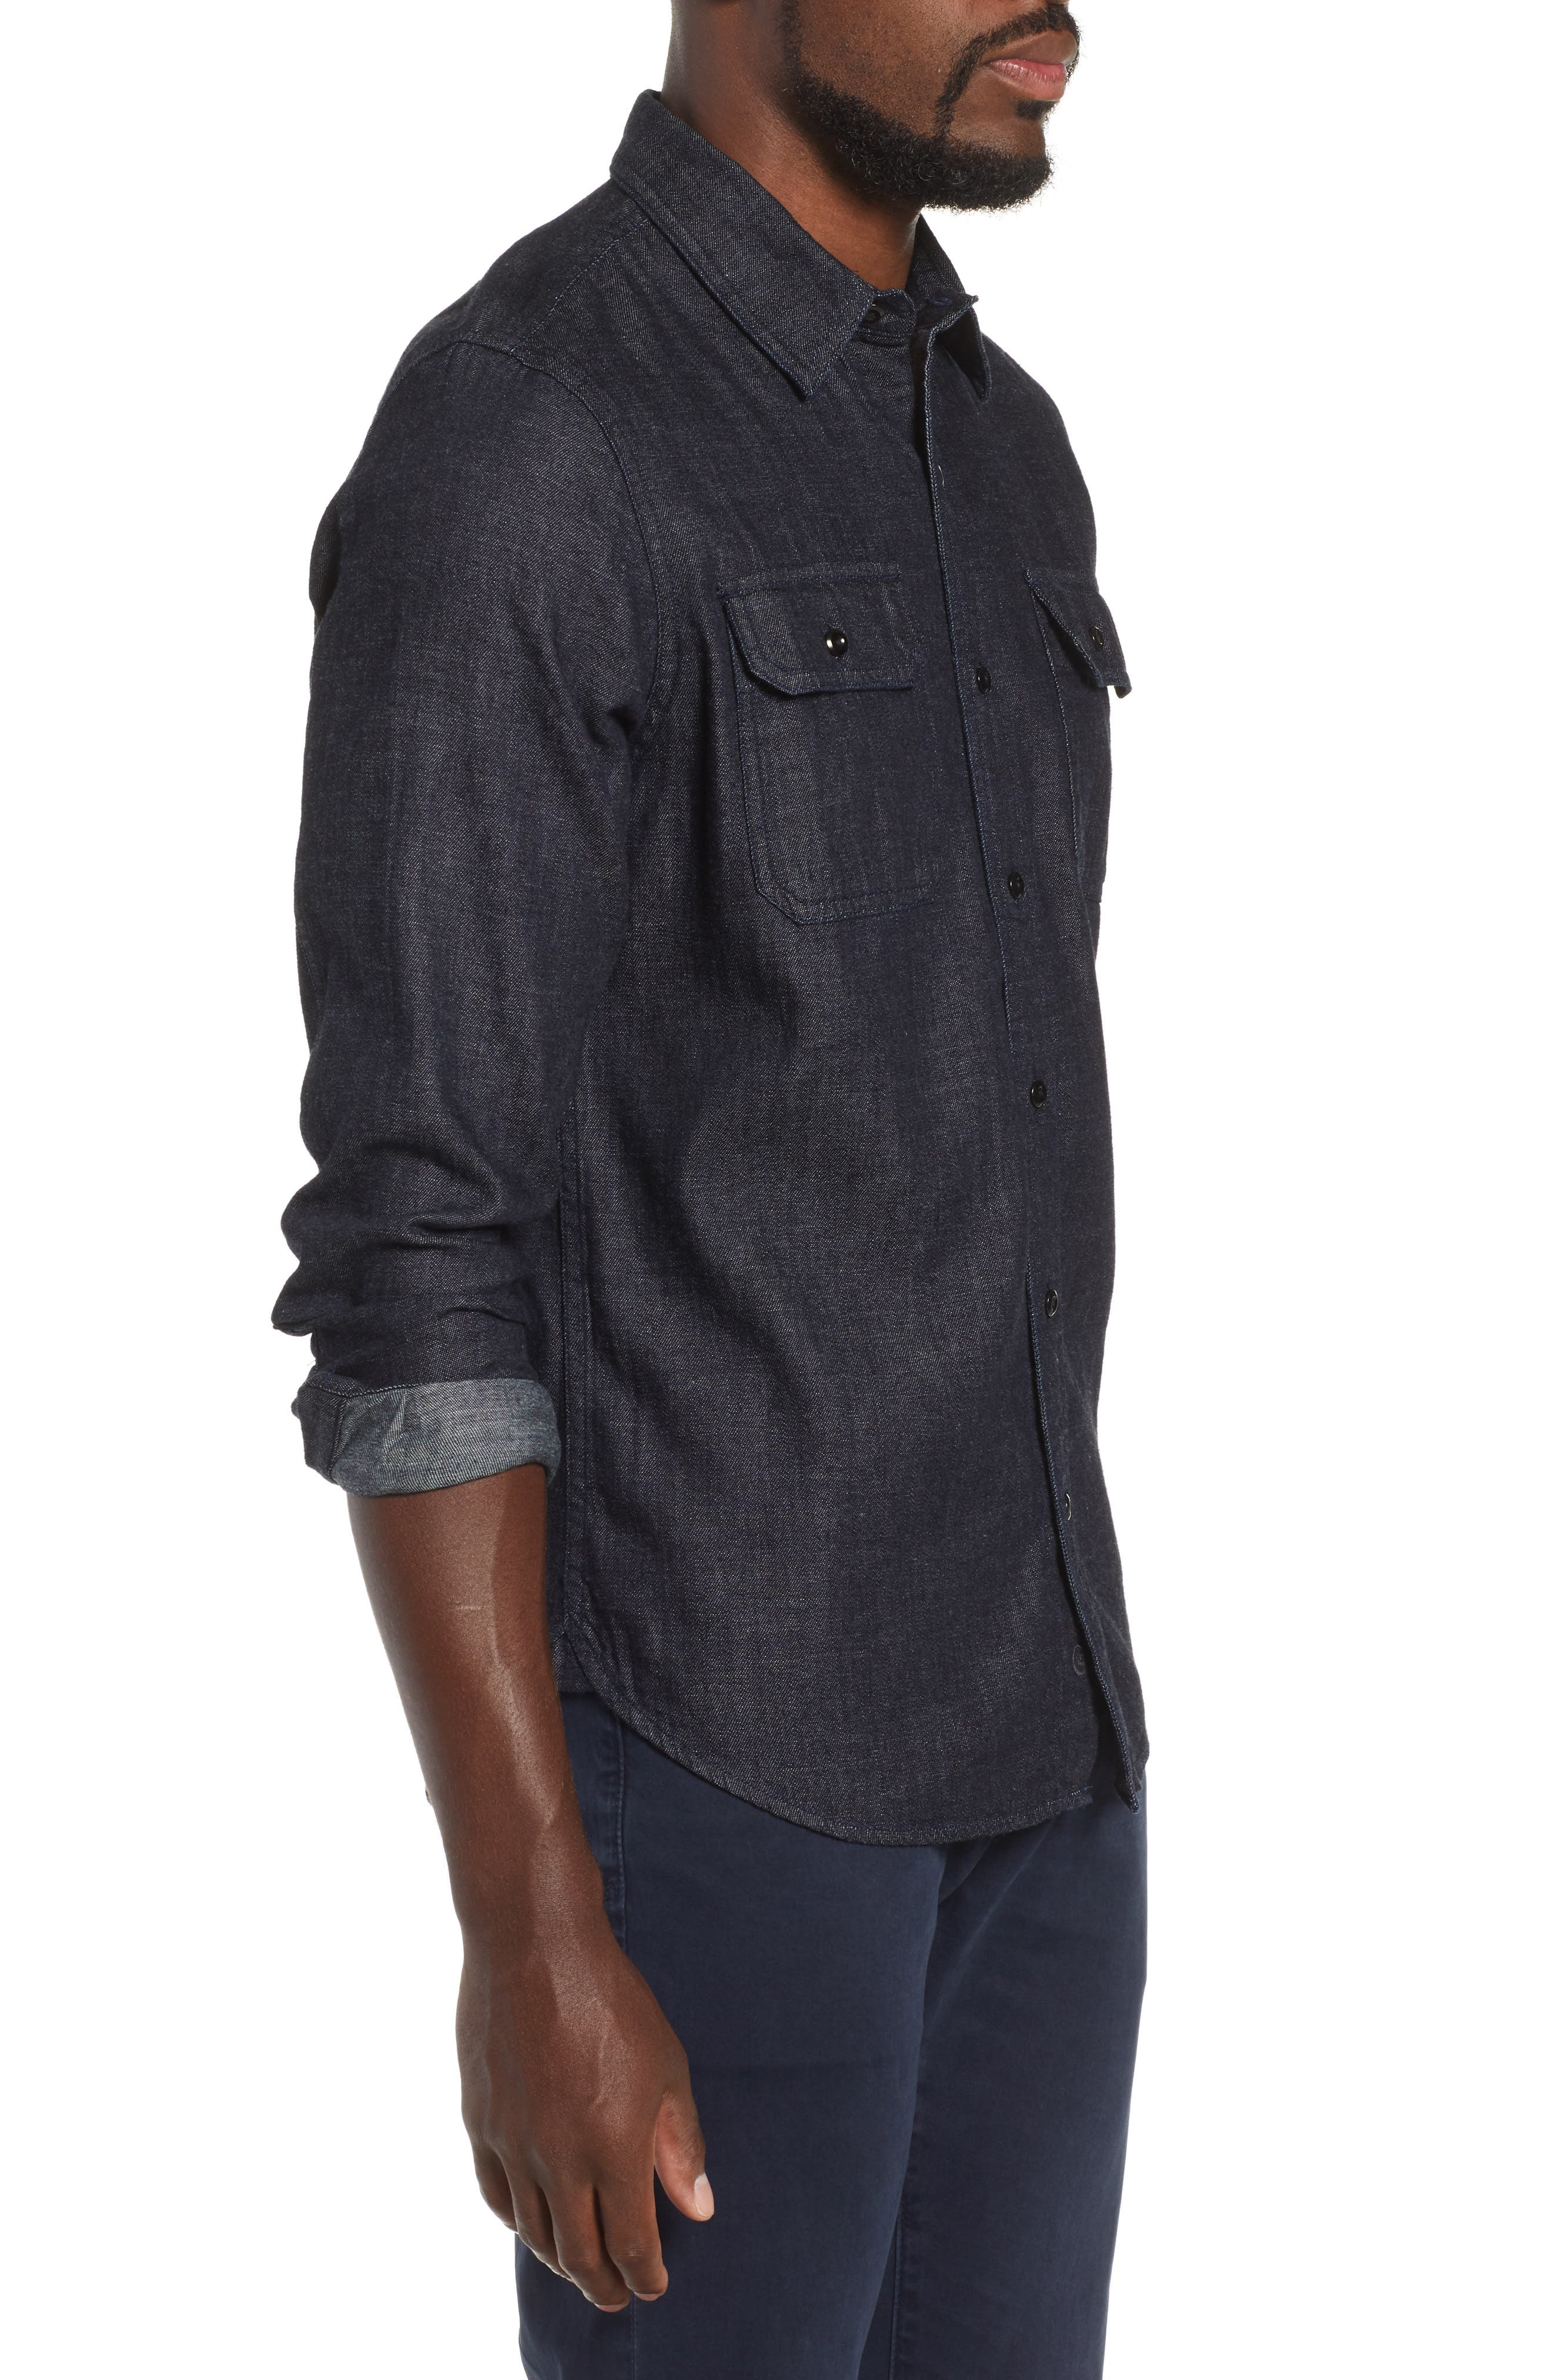 Benning Chambray Slim Fit Utility Shirt,                             Alternate thumbnail 4, color,                             020